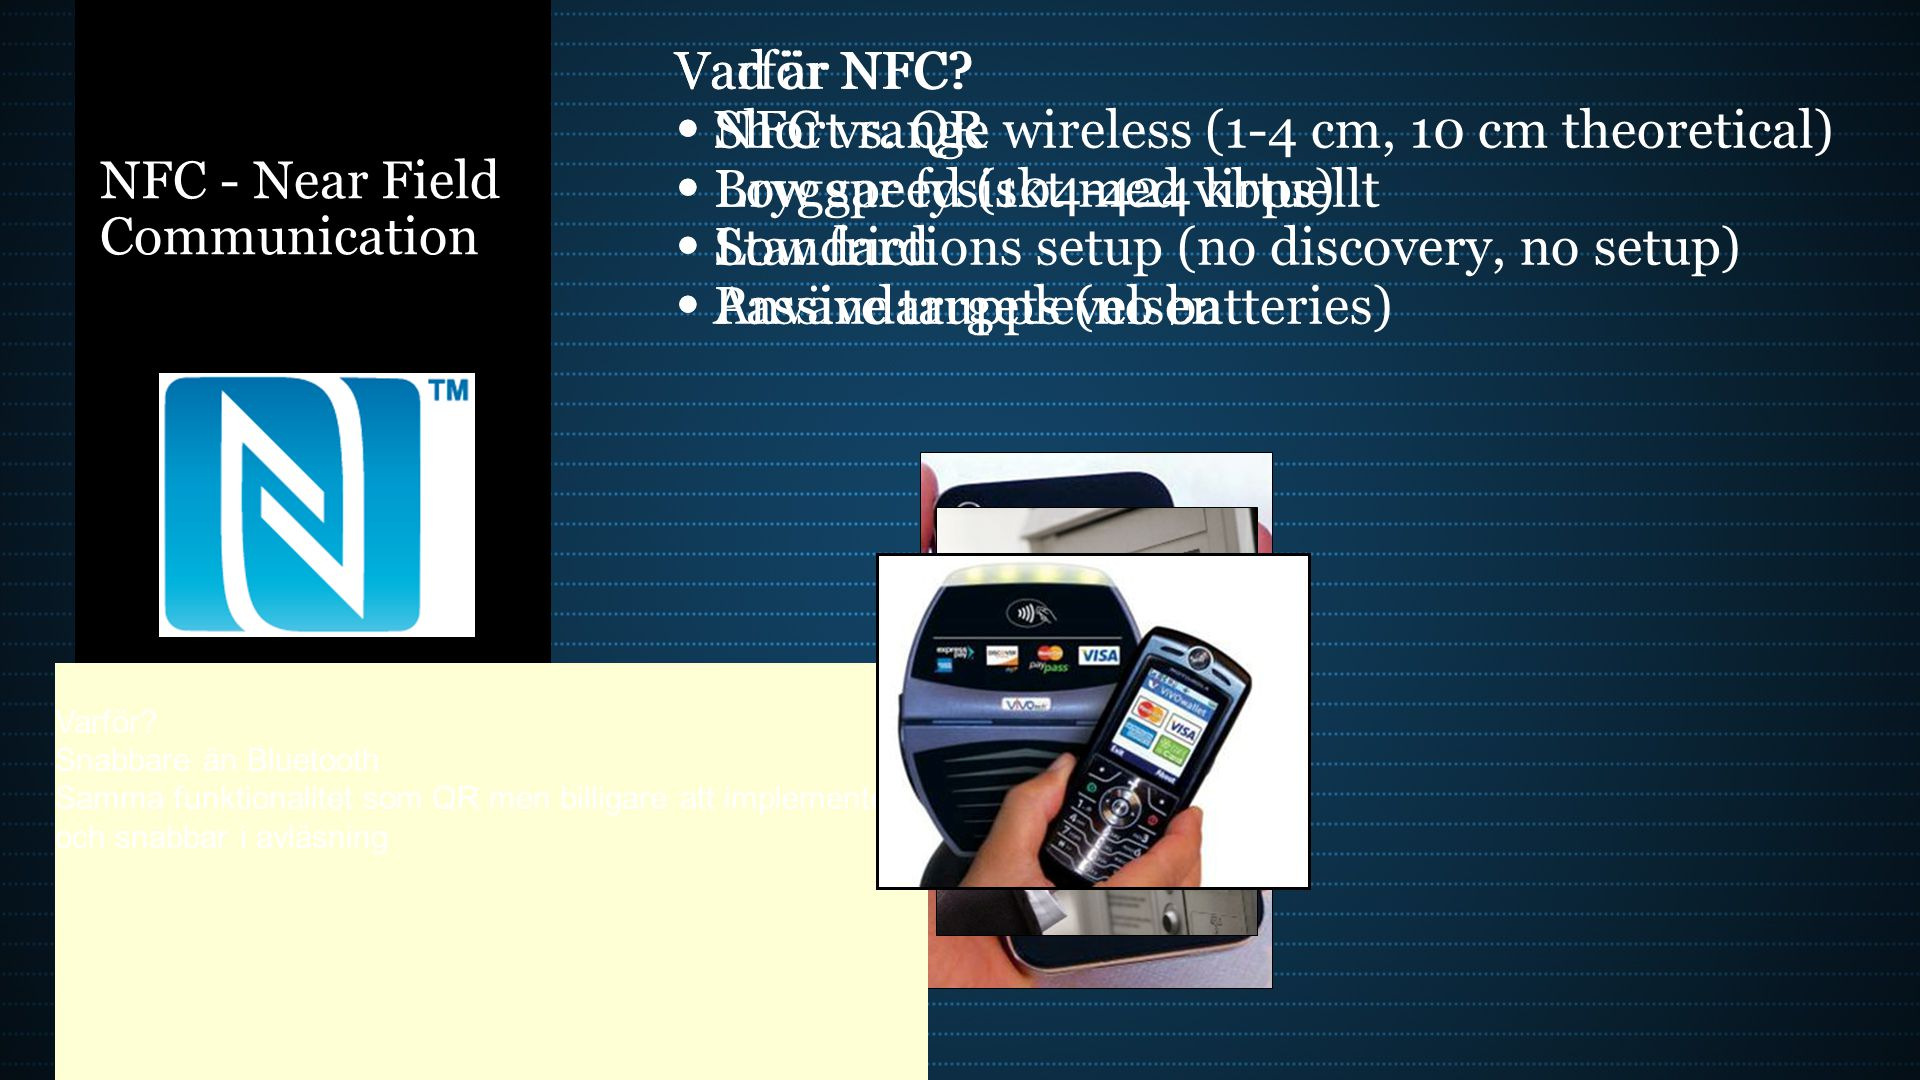 NFC - Near Field Communication Vad är NFC? Short range wireless (1-4 cm, 10 cm theoretical) Low speed (104-424 kbps) Low frictions setup (no discovery